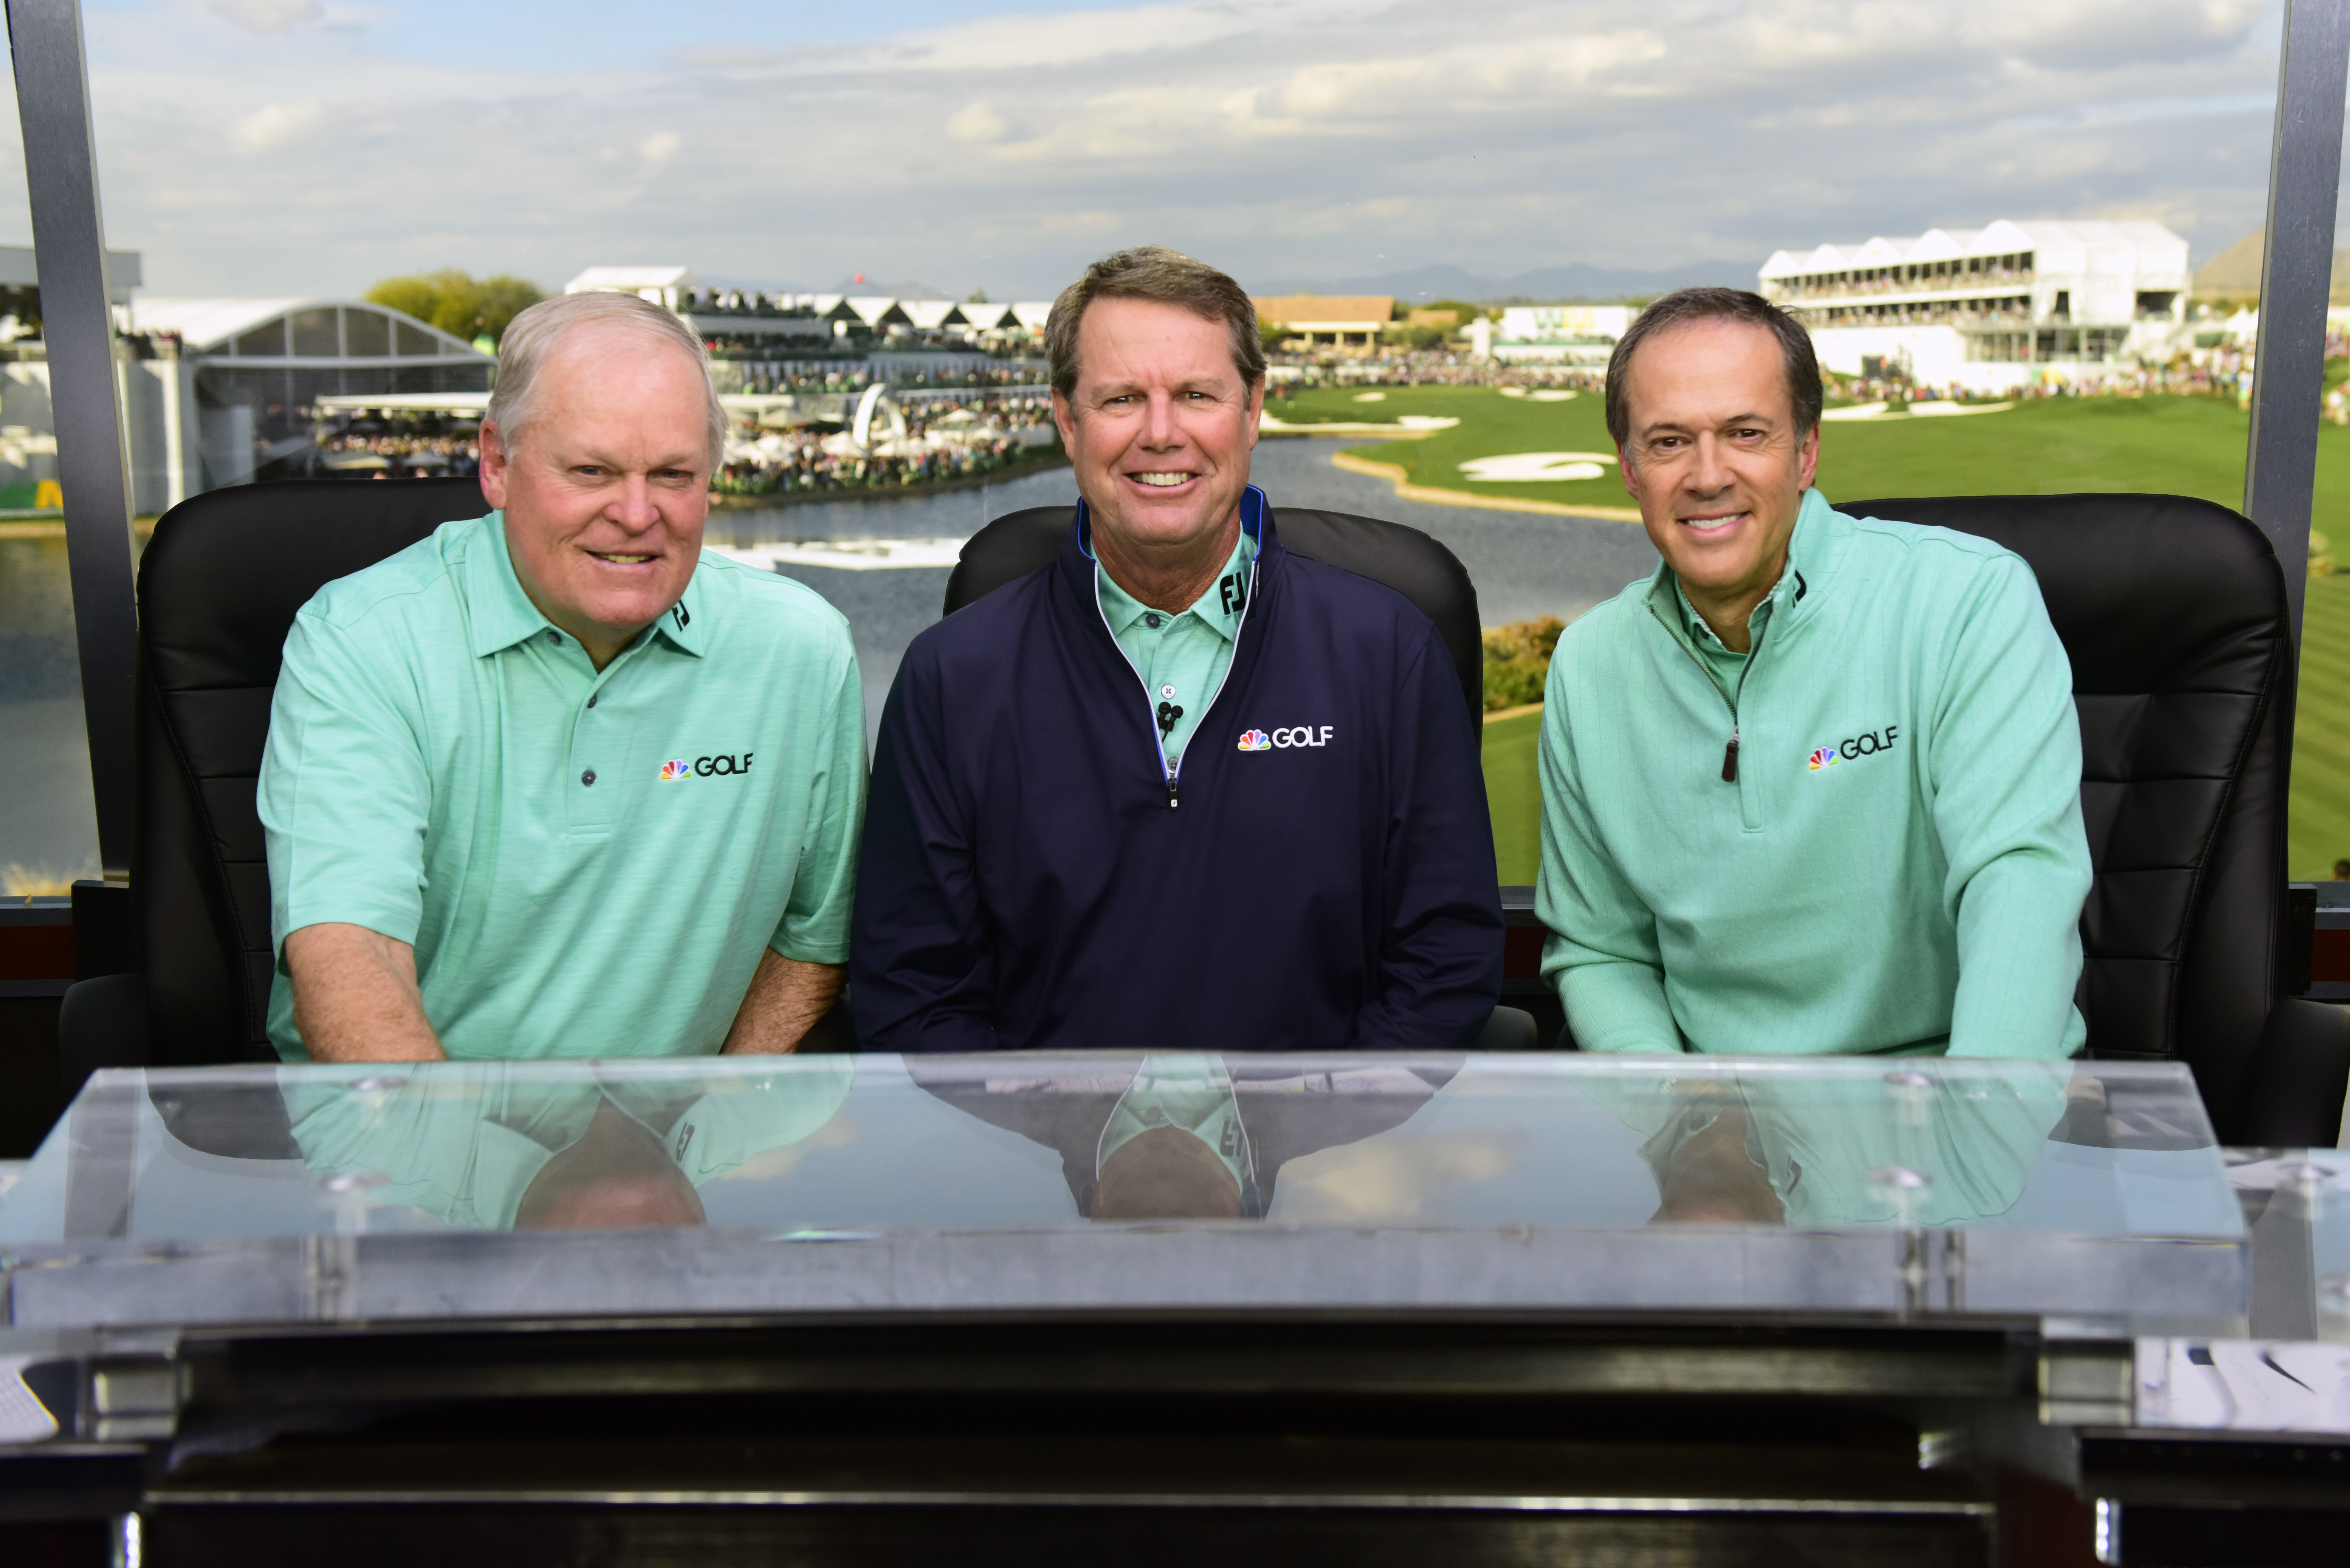 Johnny Miller, Paul Azinger, Dan Hicks, NBC